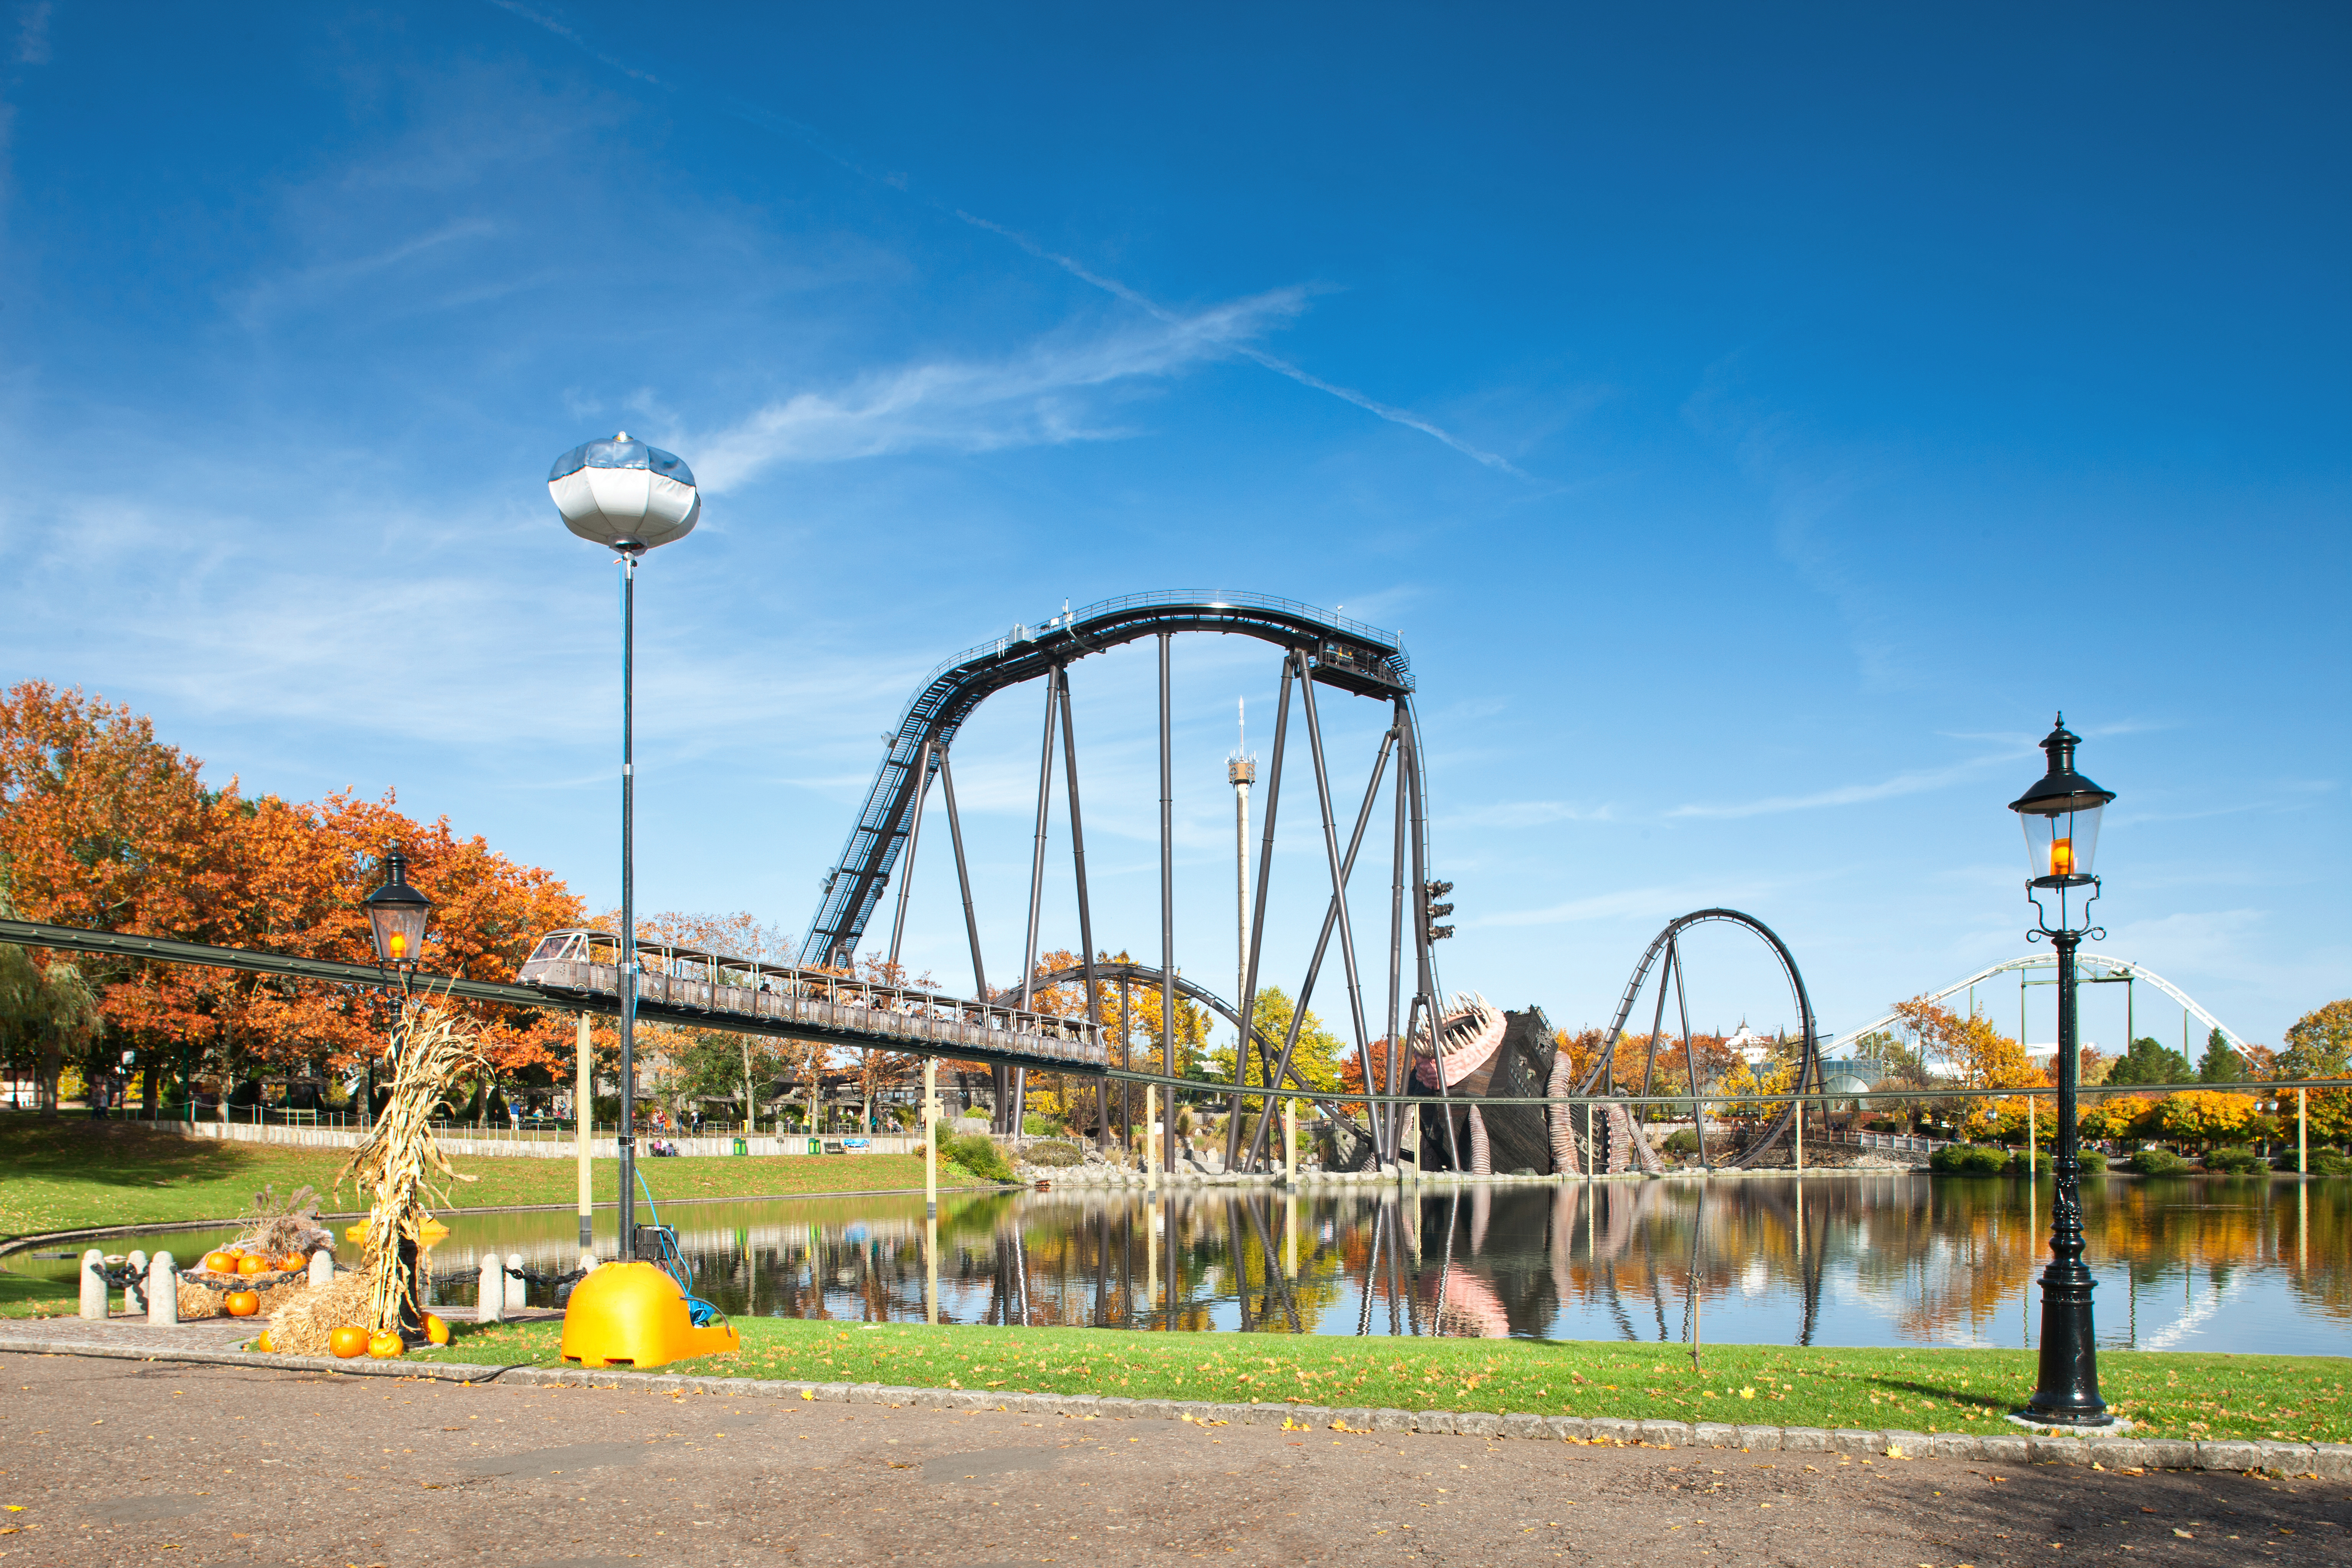 Heide Park Resort Monorail 005